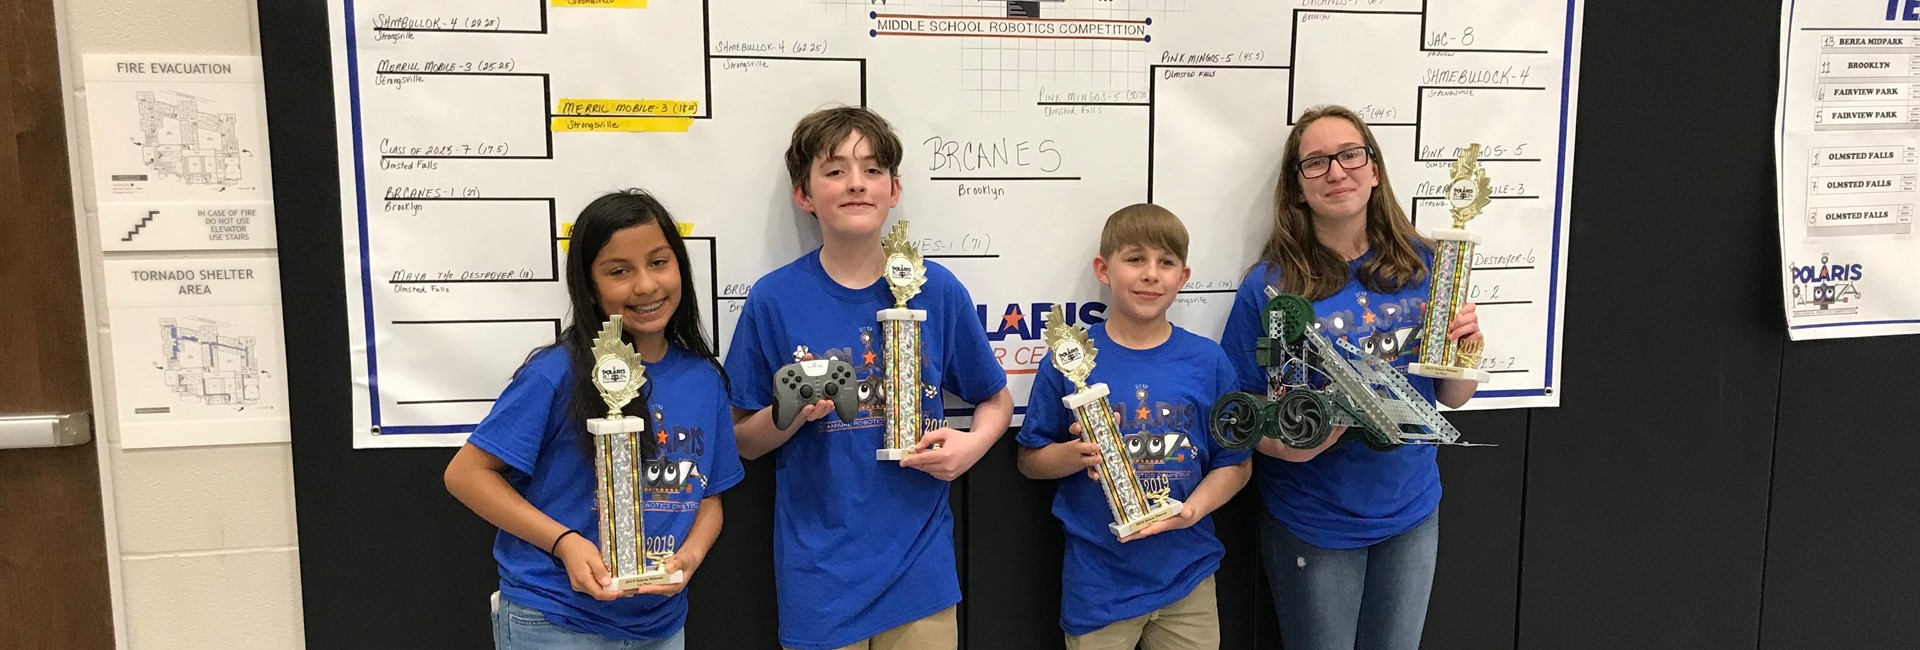 First Place Brooklyn Middle School Robotics Team Members